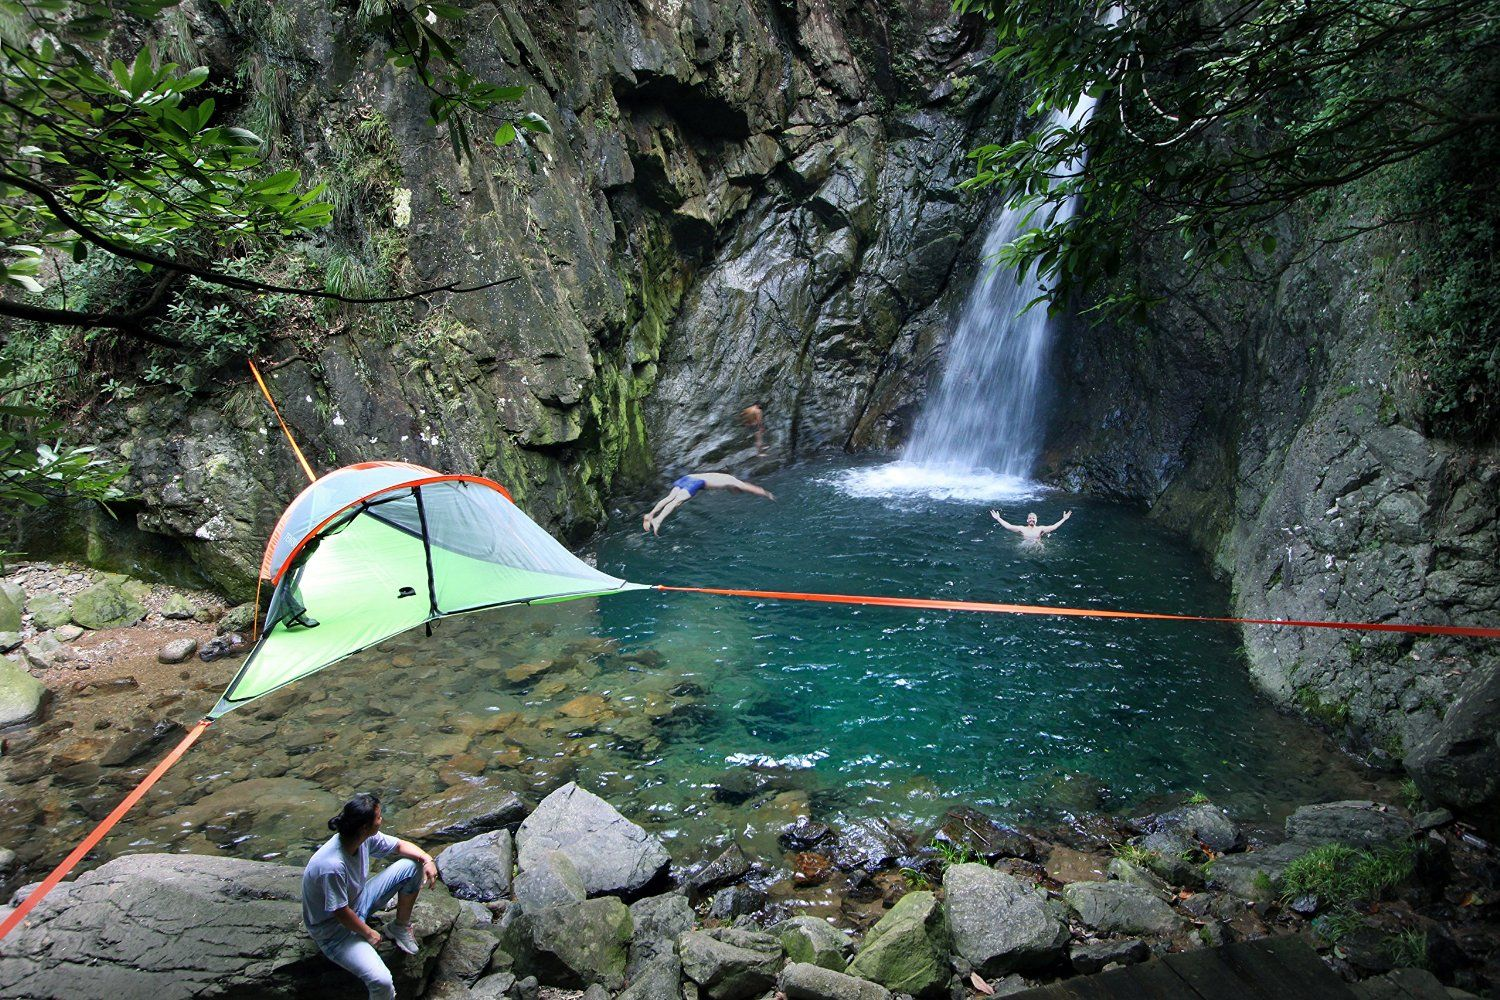 Amazon.com Tentsile Connect 2-Person 4-Season Tree Tent Hammock with : 4 season hammock tent - memphite.com